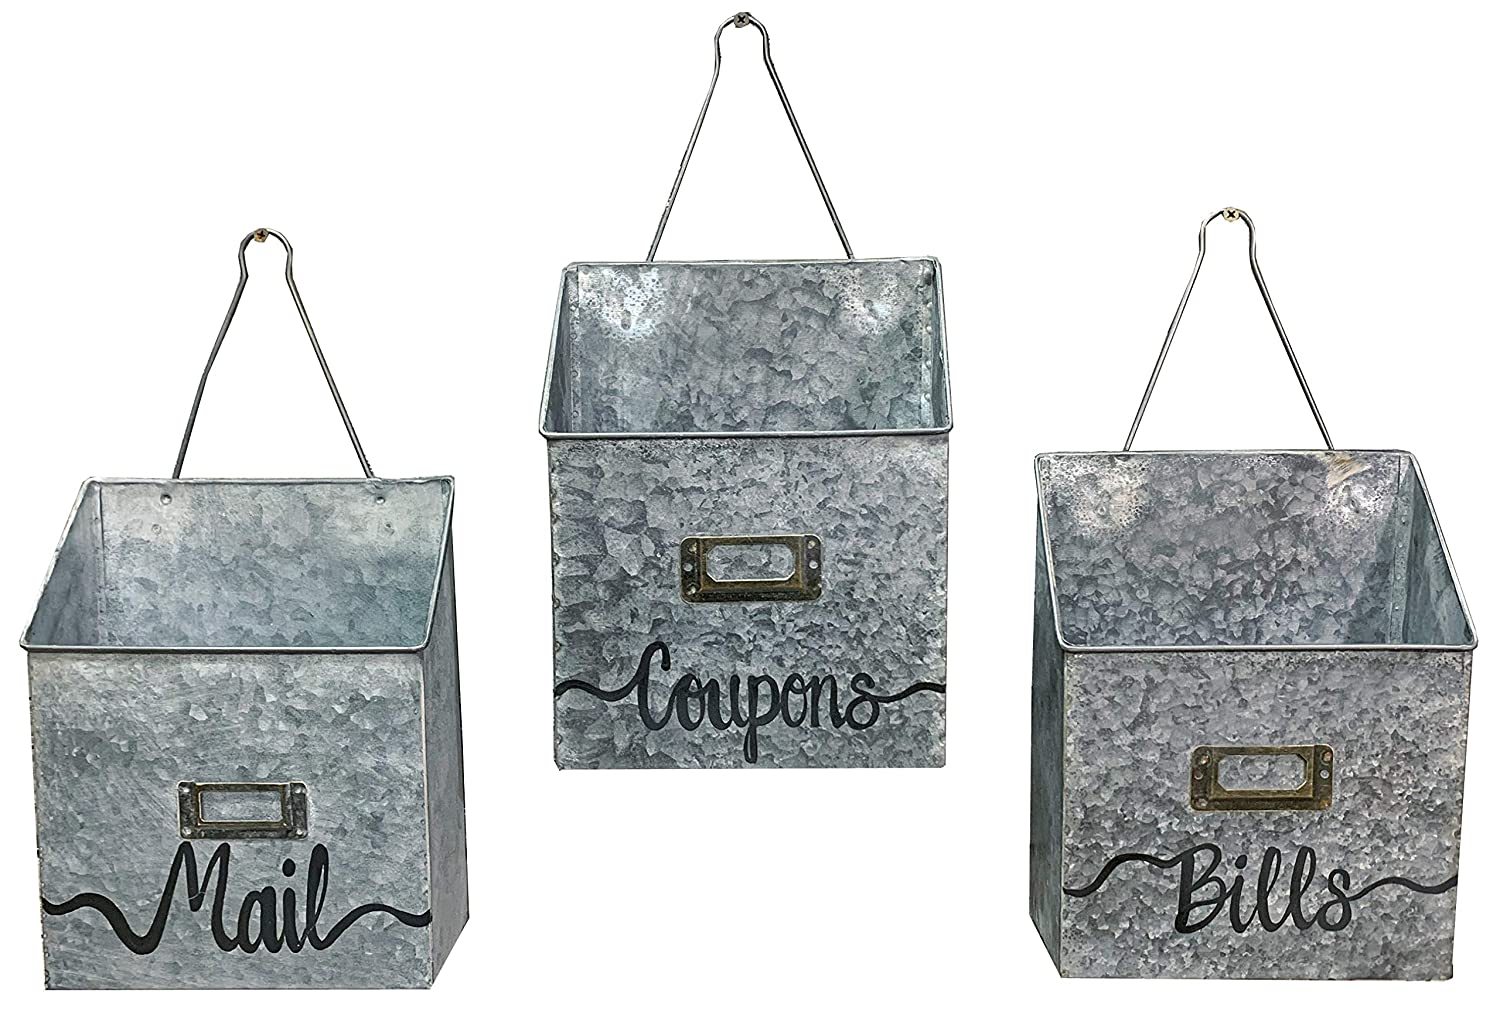 MAILBOX ORGANIZER Special sale item Brand Cheap Sale Venue WALL BUCKET Tin Distressed Hanger with Rustic